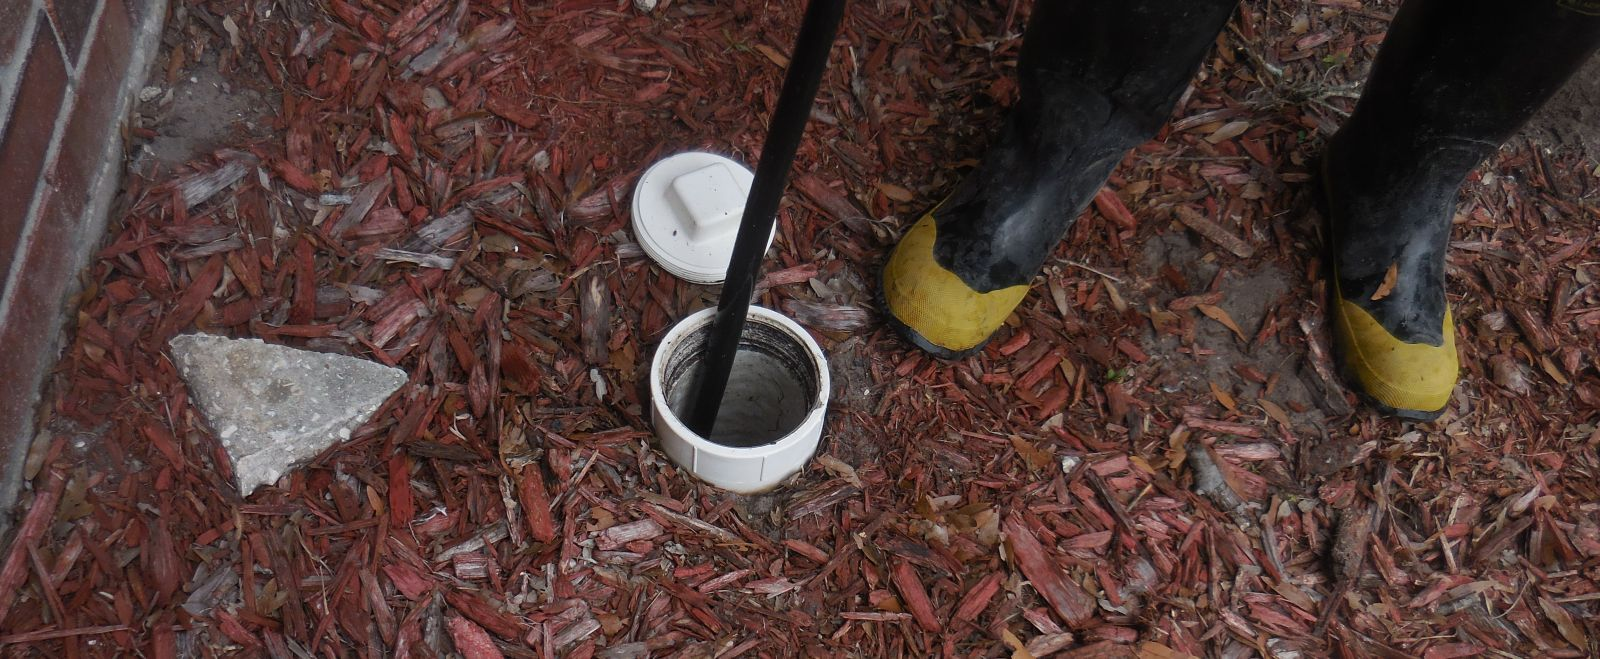 Sewer and Storm Drain Cleaning